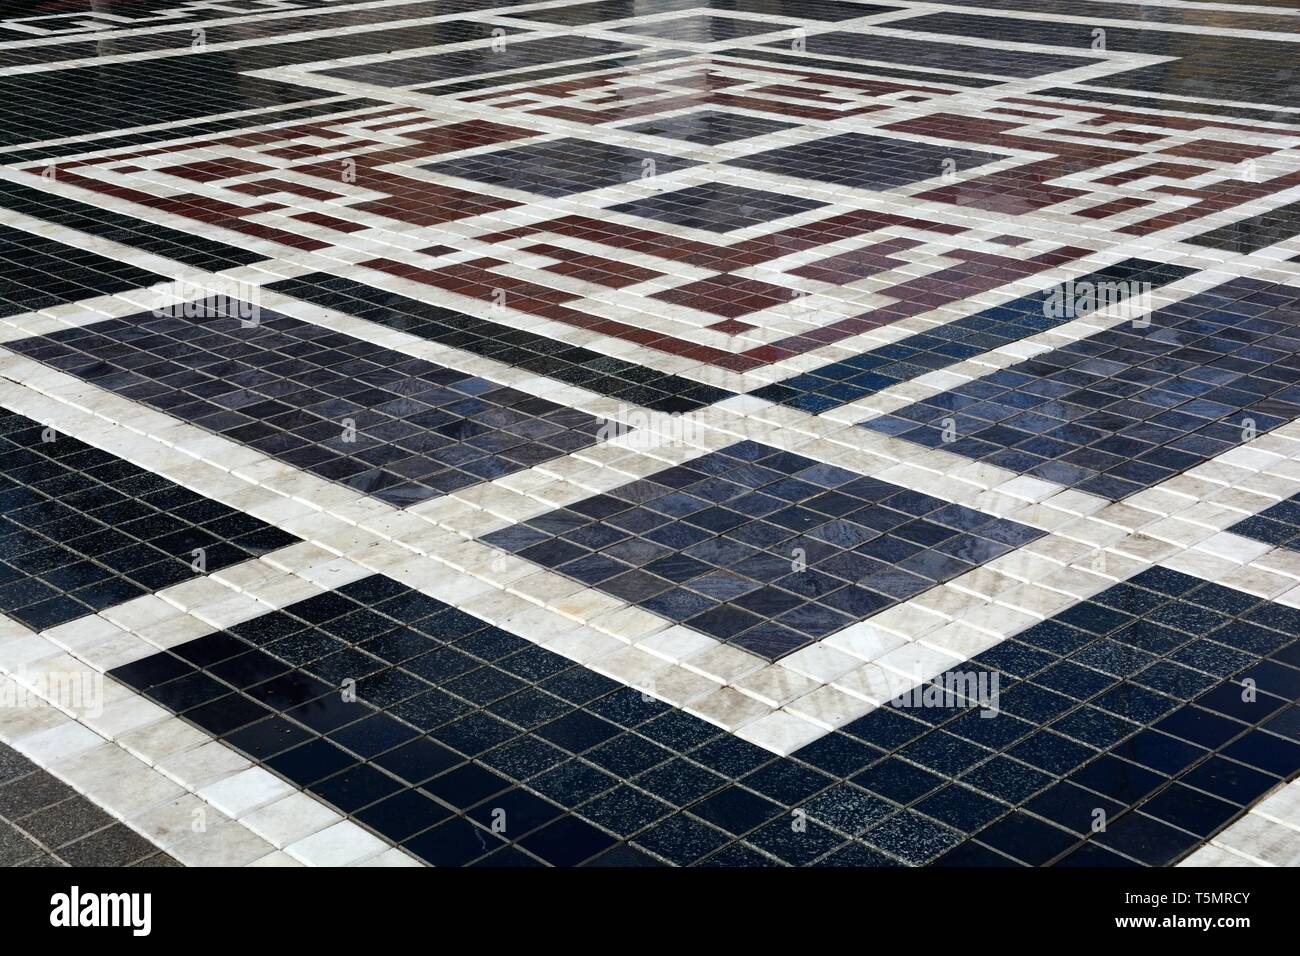 Marble mosaic floor of the Bektashi World Centre Brektashi order headquarters Tirana Albania - Stock Image